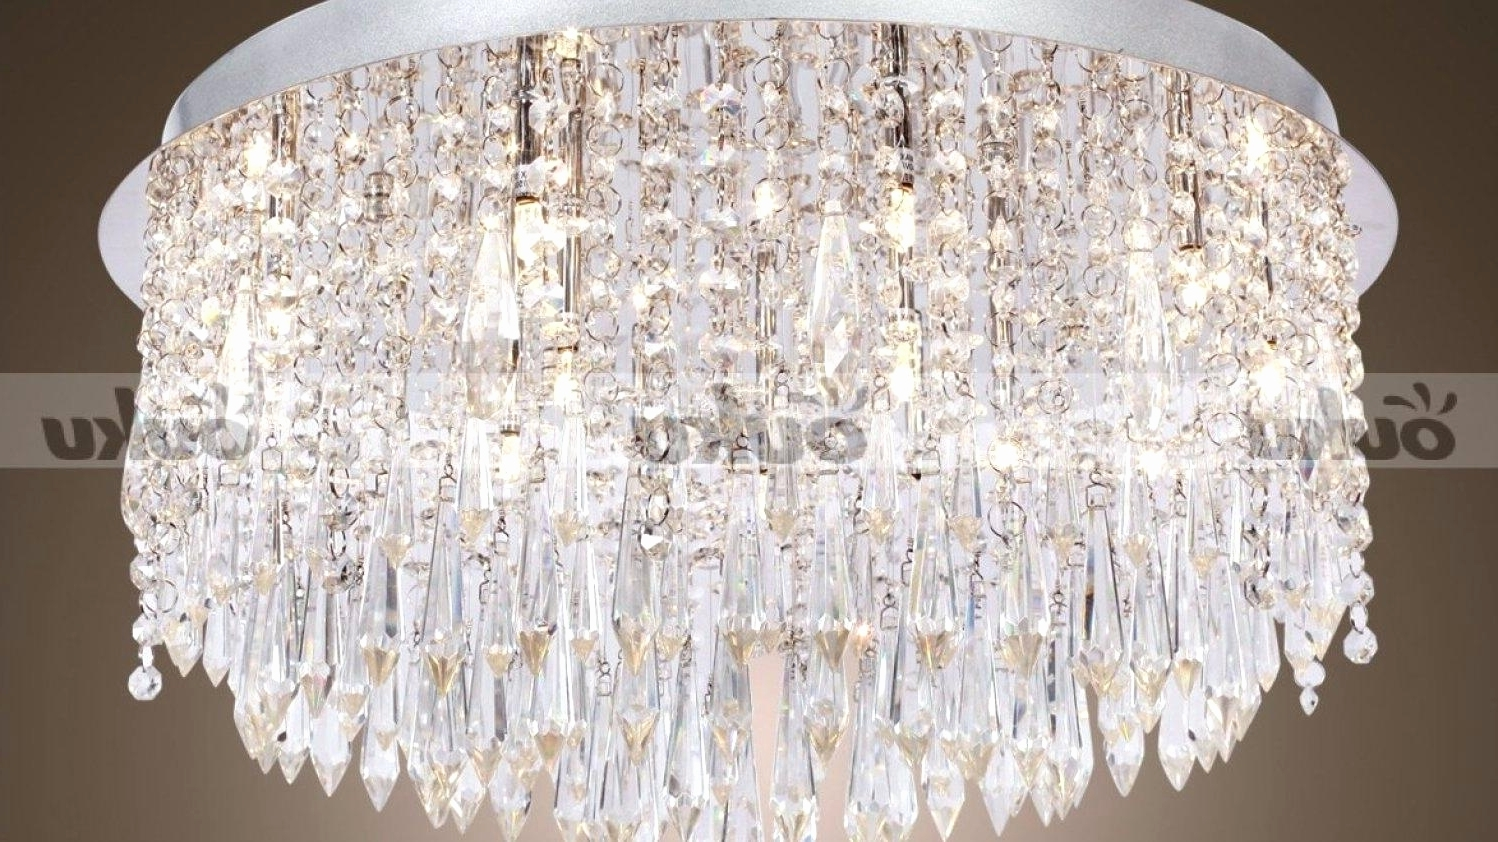 28 Elegant Chandeliers For Low Ceilings Images (View 2 of 20)